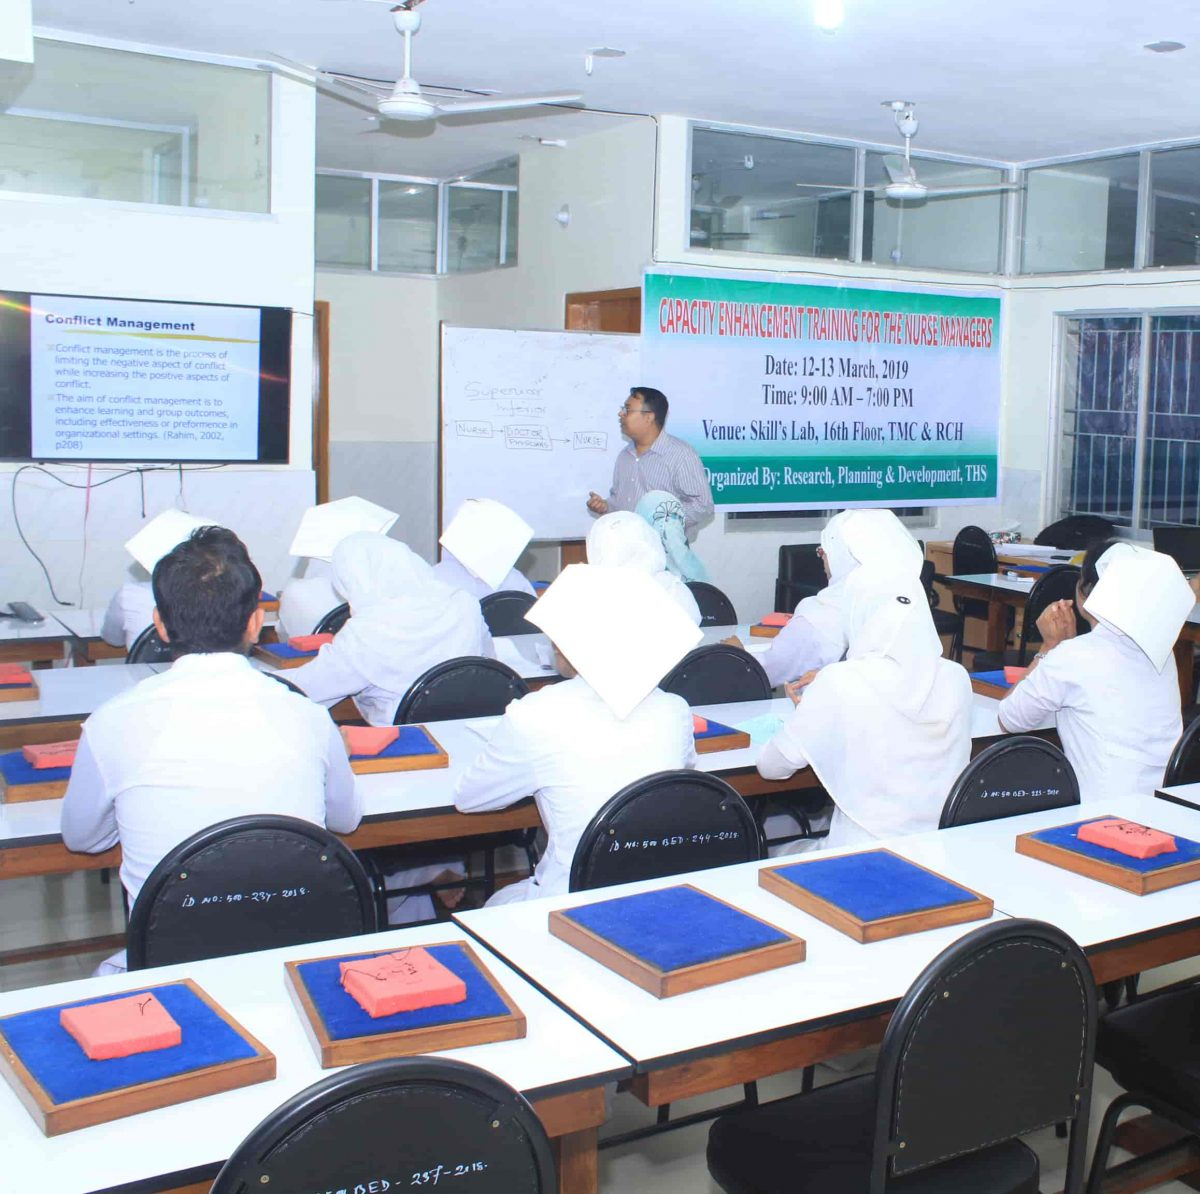 Capacity Enhancement Training for Nurse Managers (2)